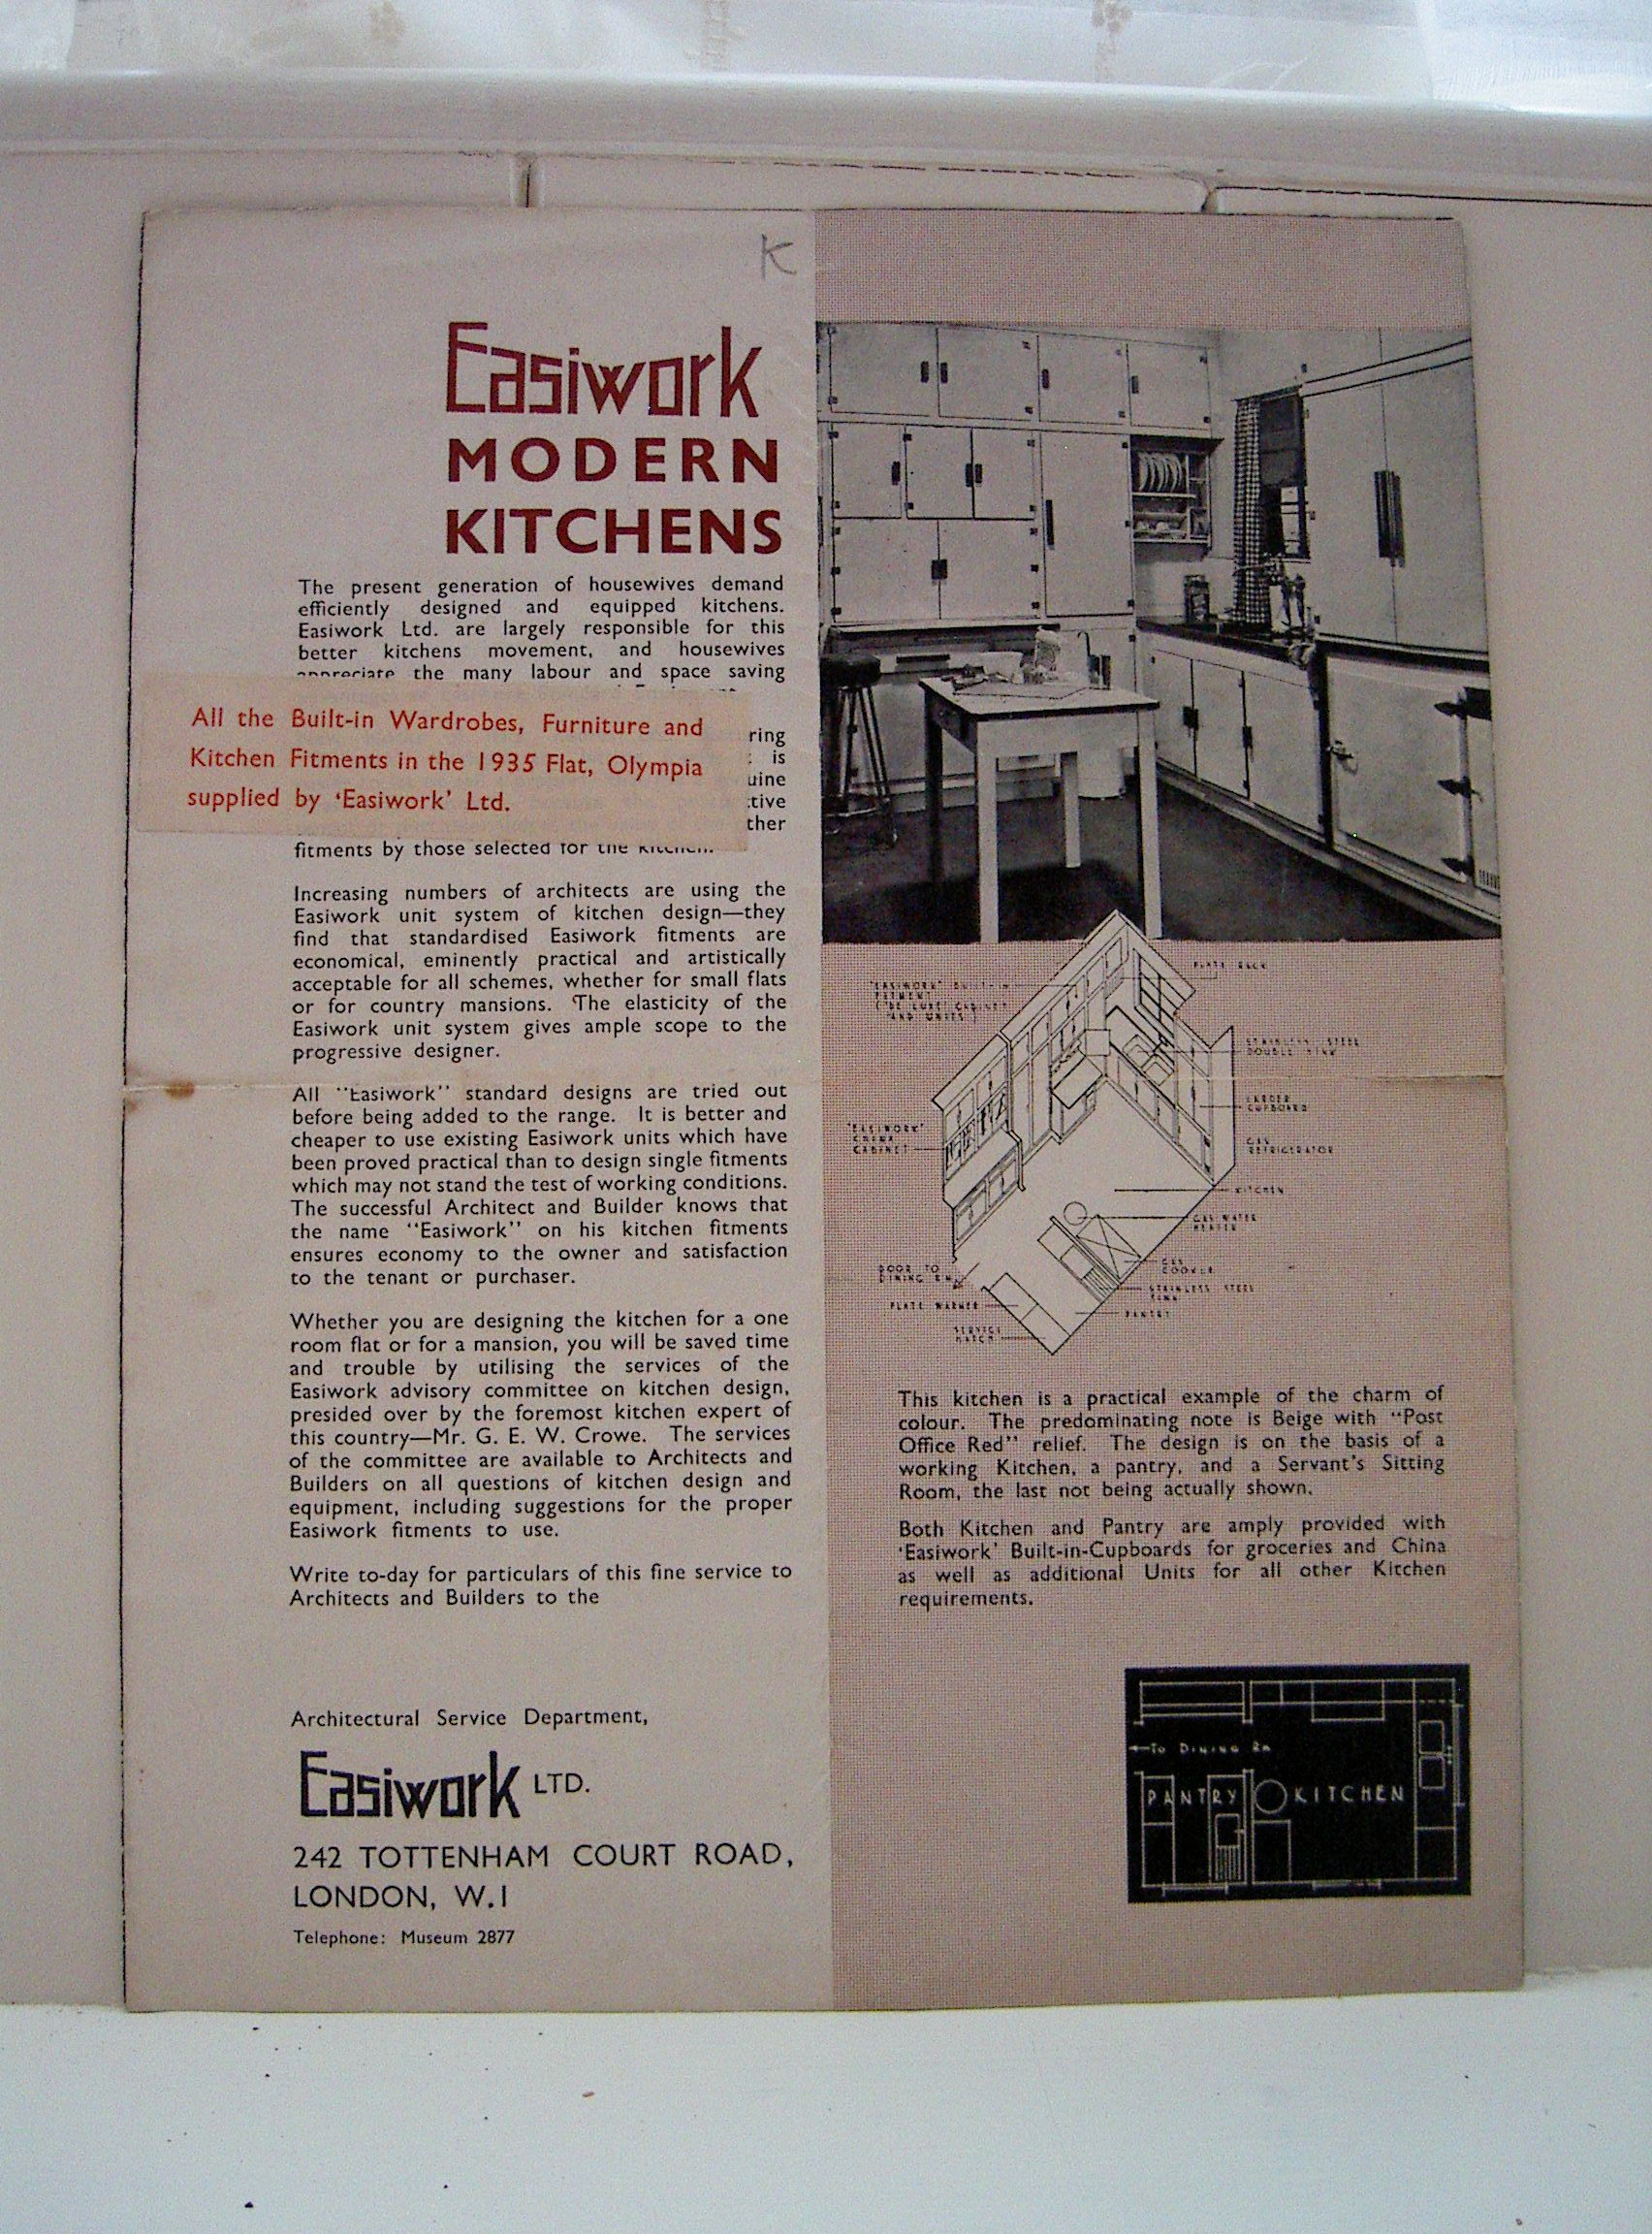 Best Images About A Few Easiwork Pictures On Pinterest S - Small parallel kitchen design